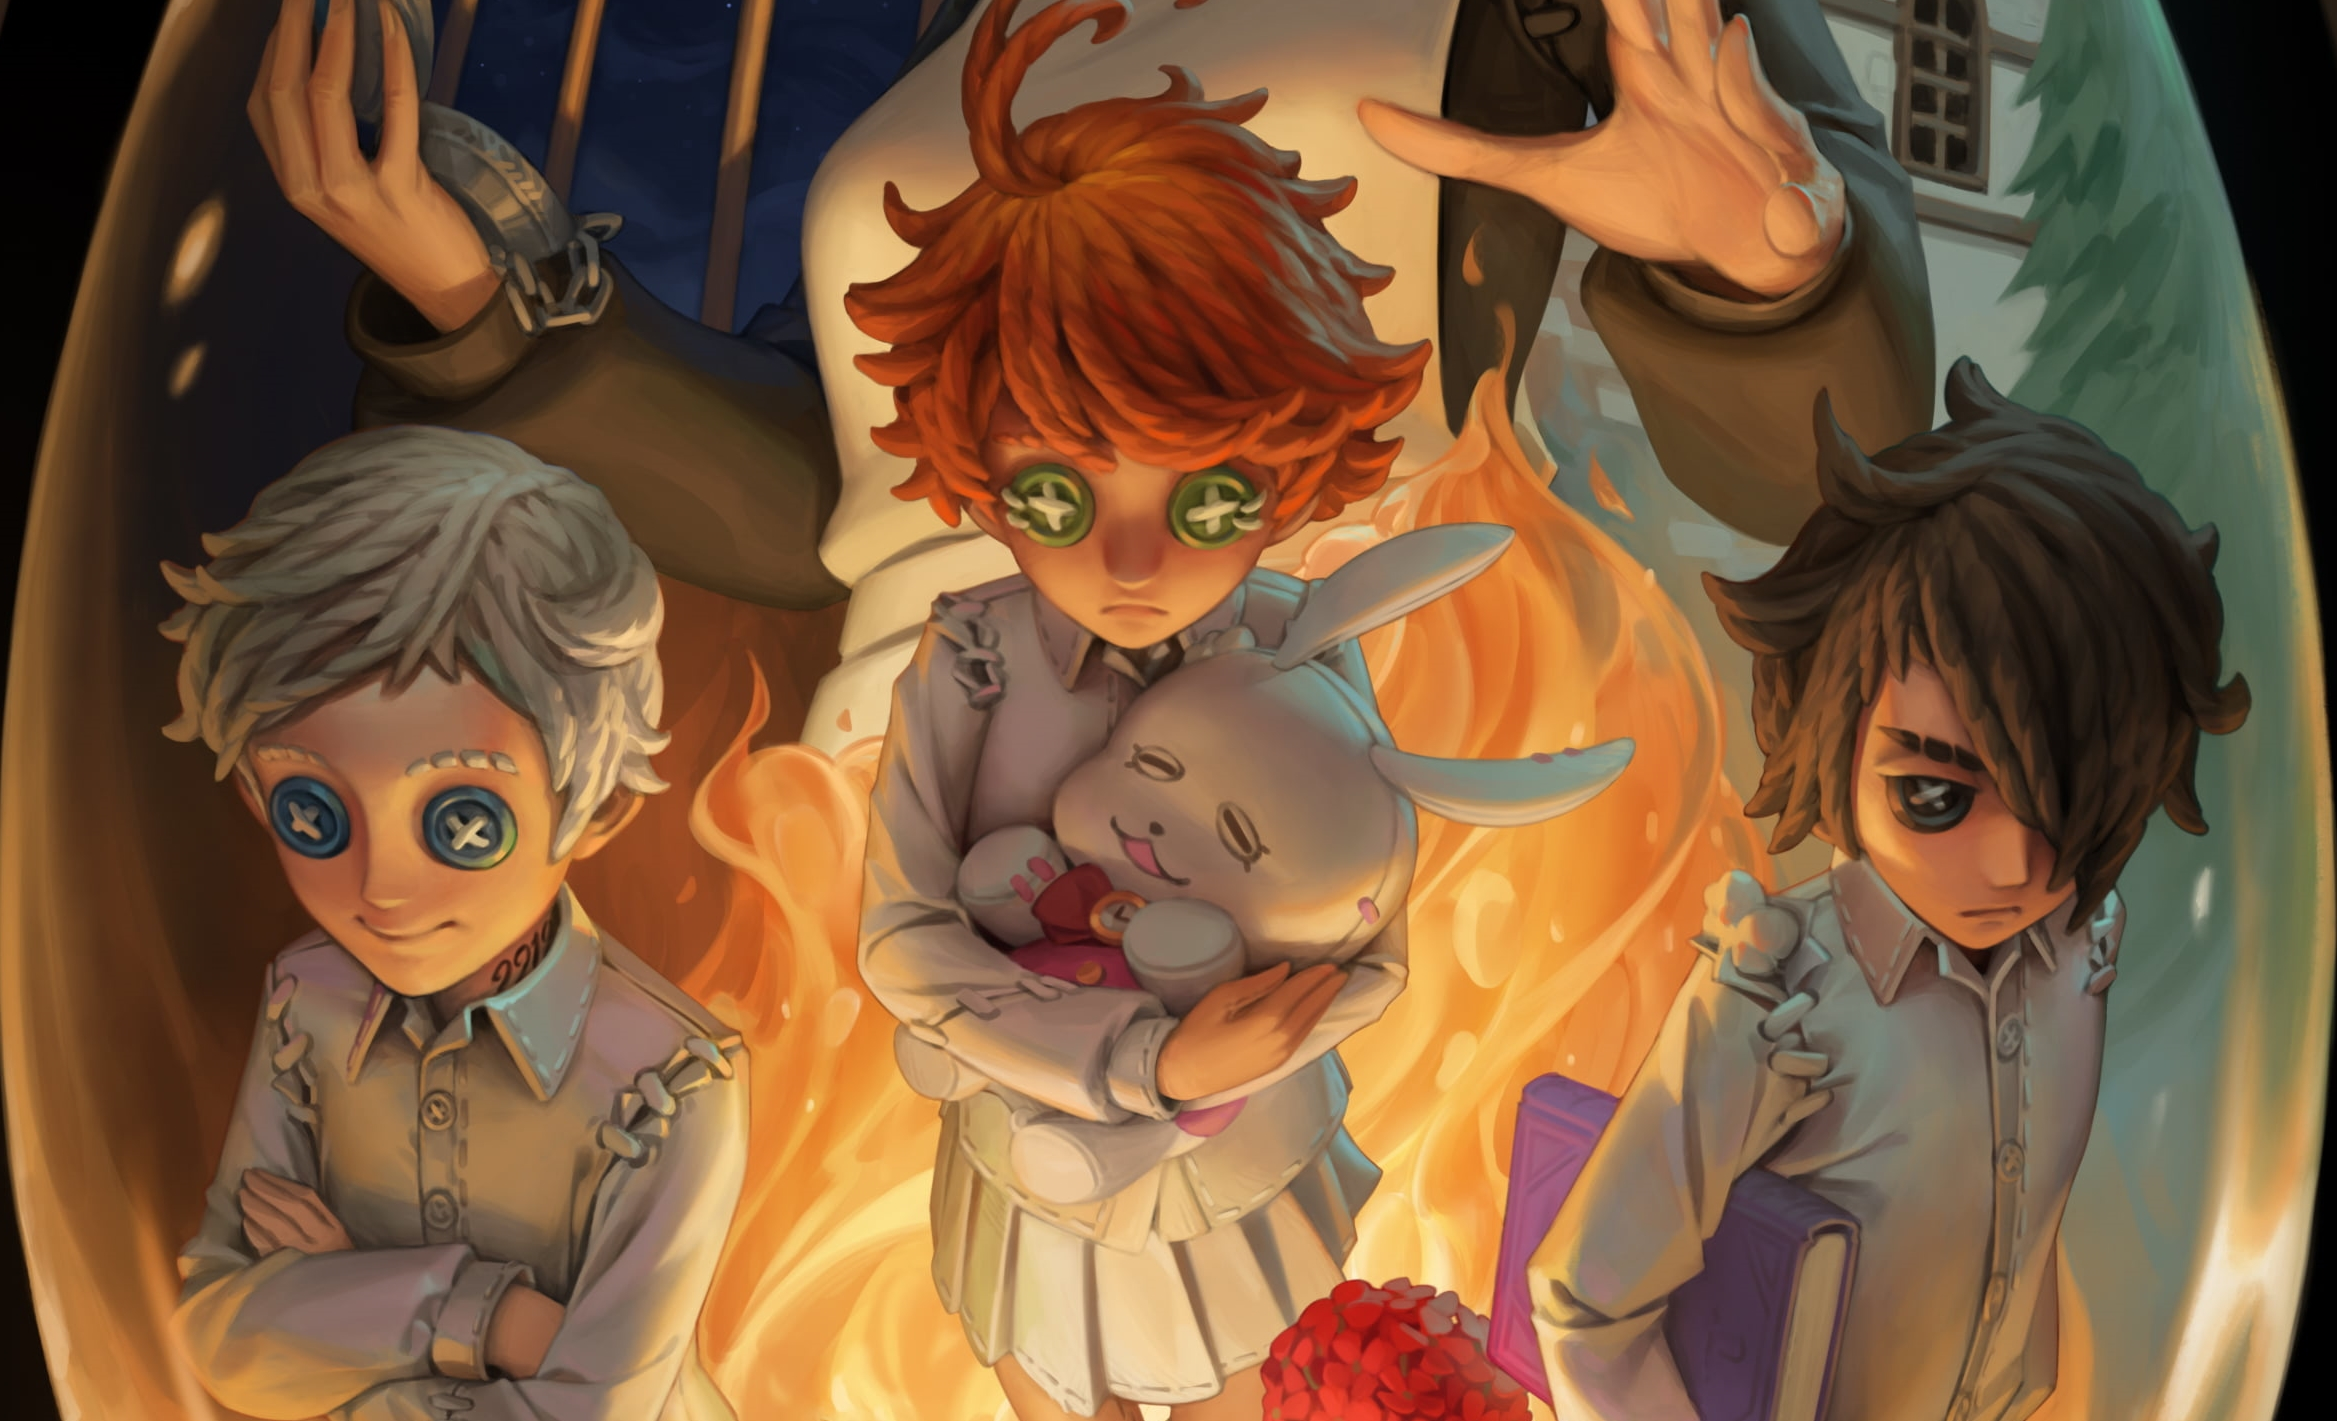 The Promised Neverland 1022021 2